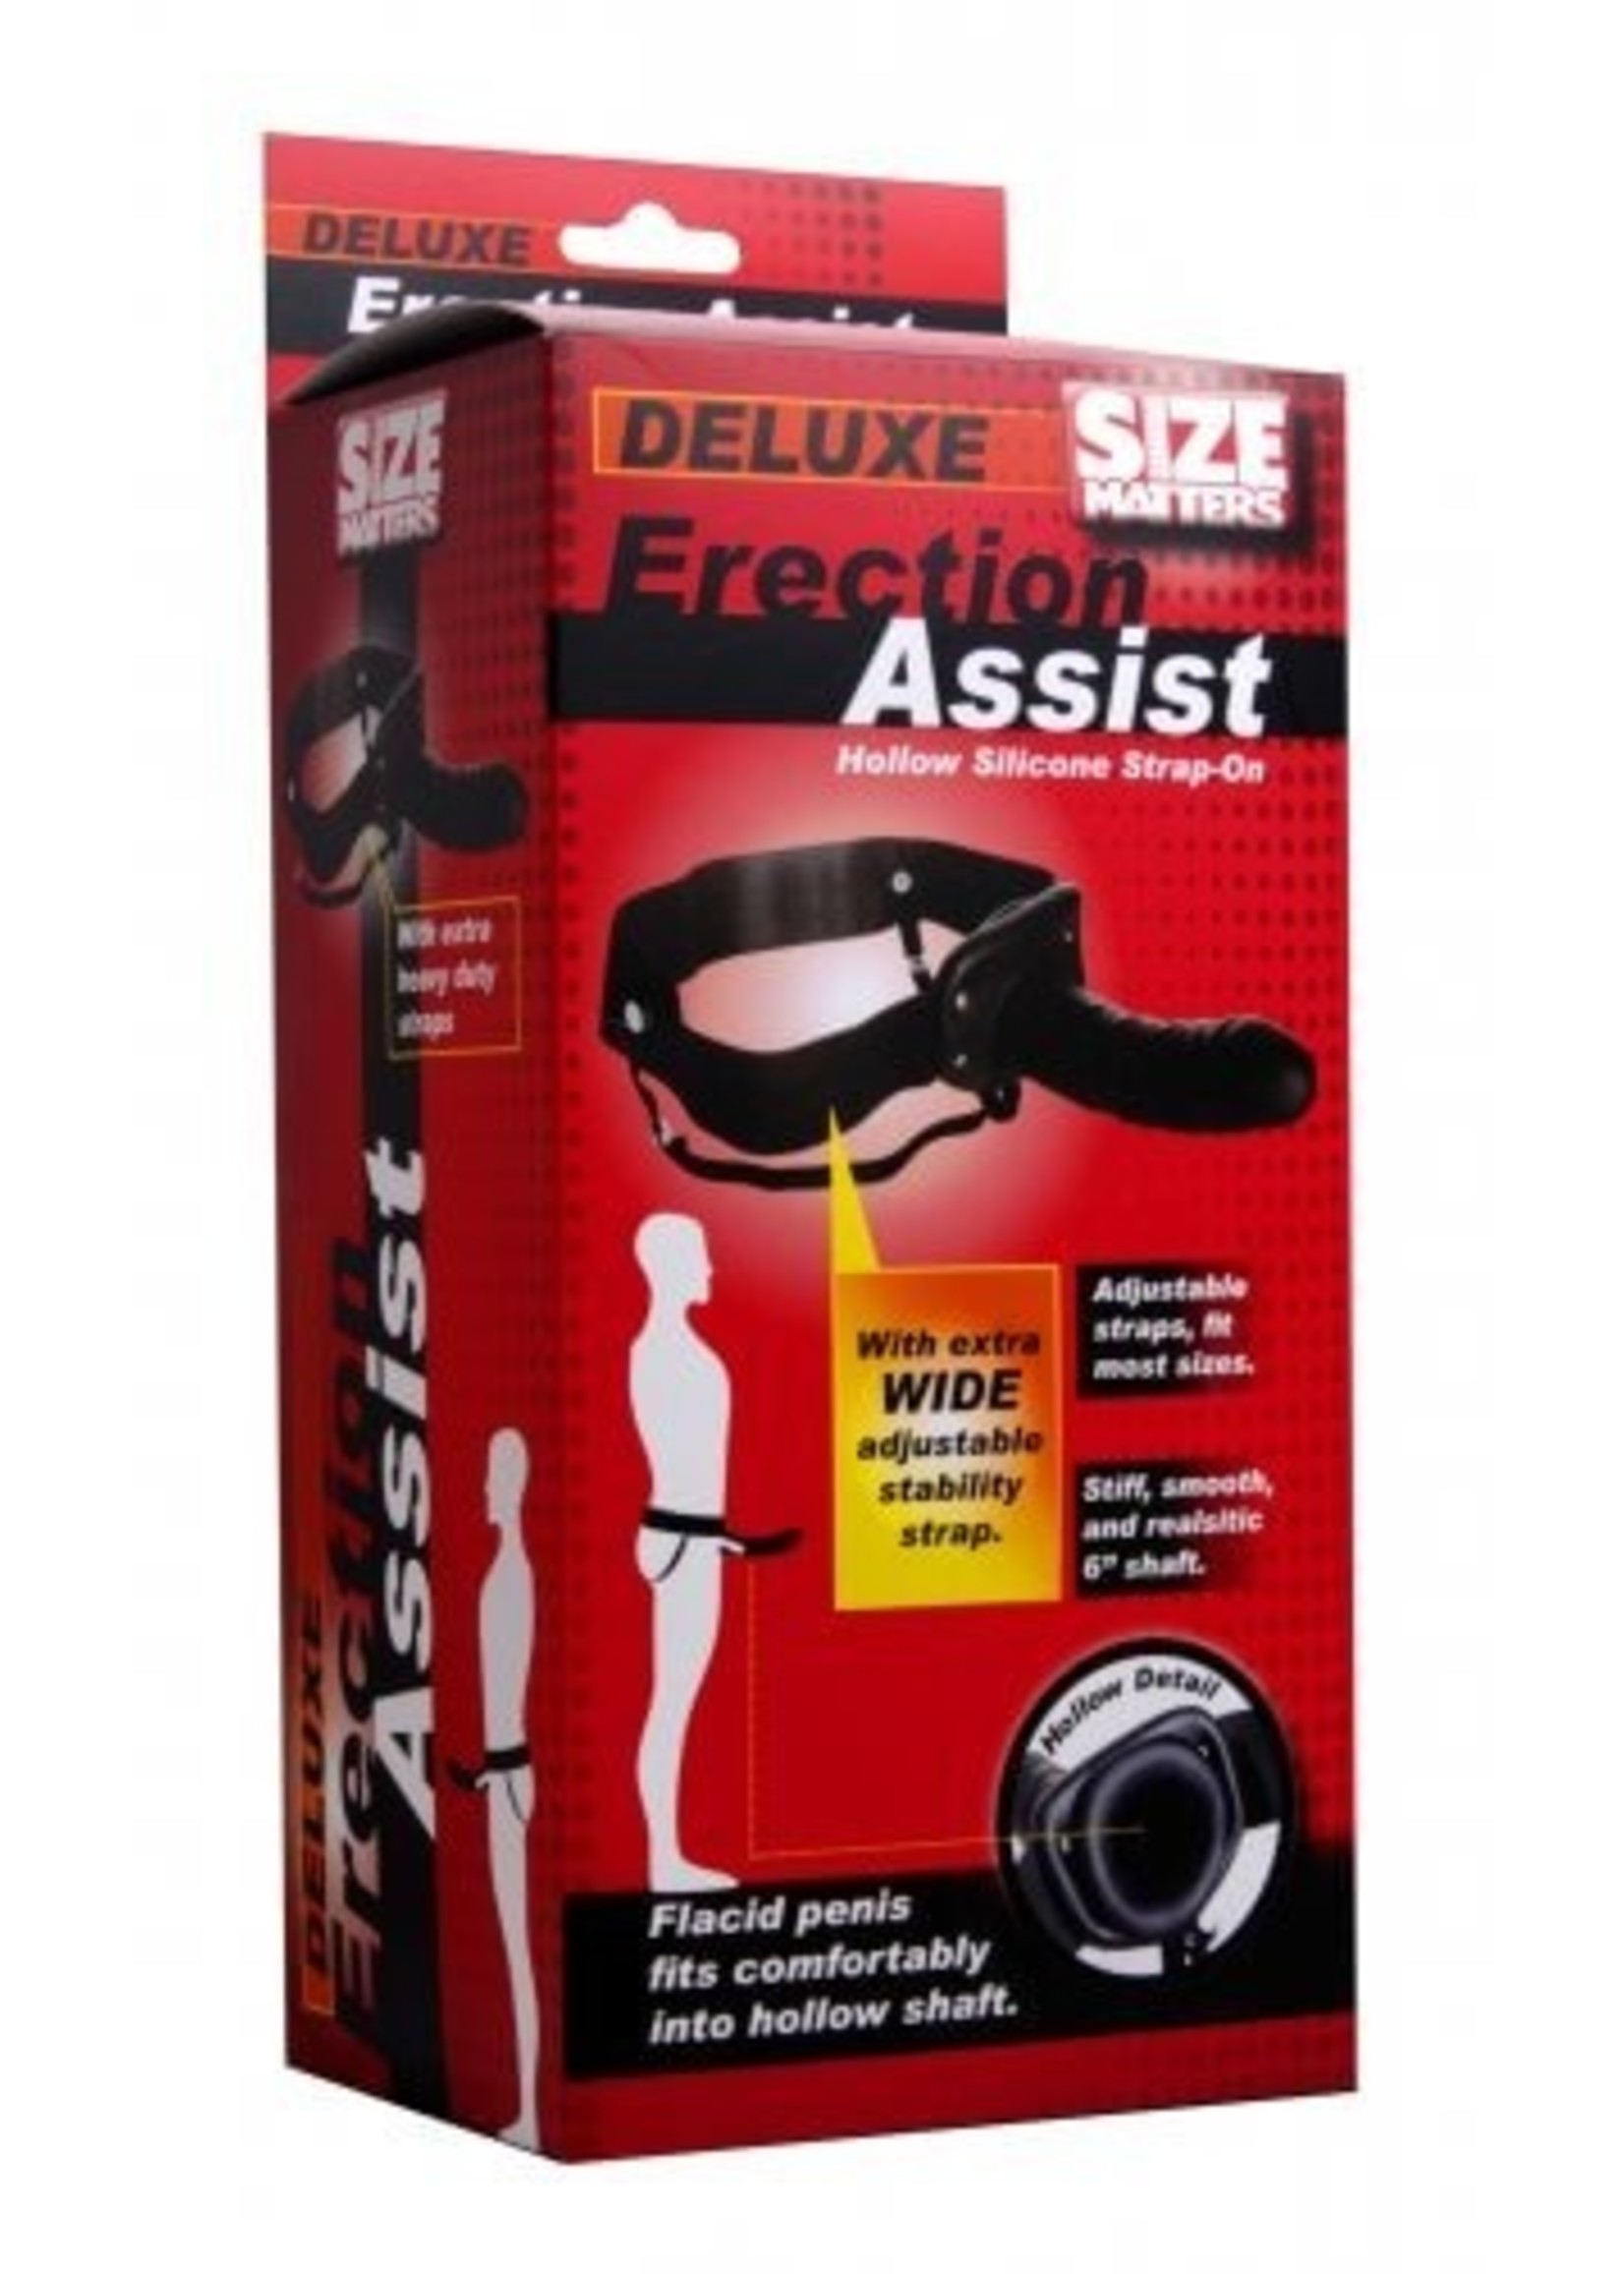 Size Matters Size Matters Erection Assist Hollow Silicone Strap On